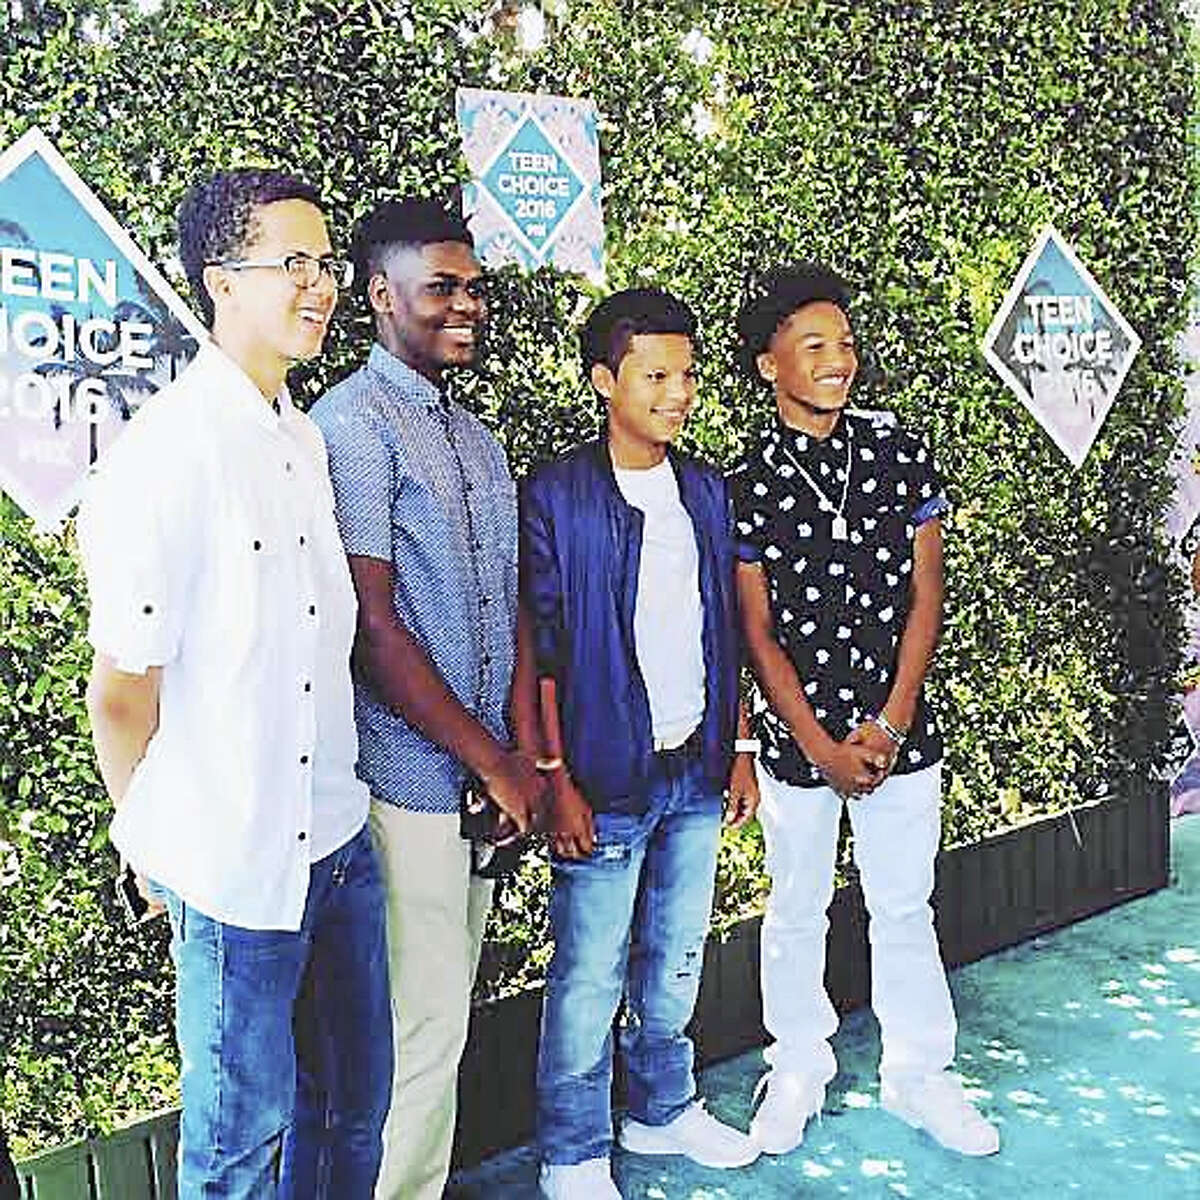 King/Robinson graduates, from left, Anass Essaad, Elijah West, Paolo Cepeda and Jordan Berrios, at the Teen Choice Awards 2016.